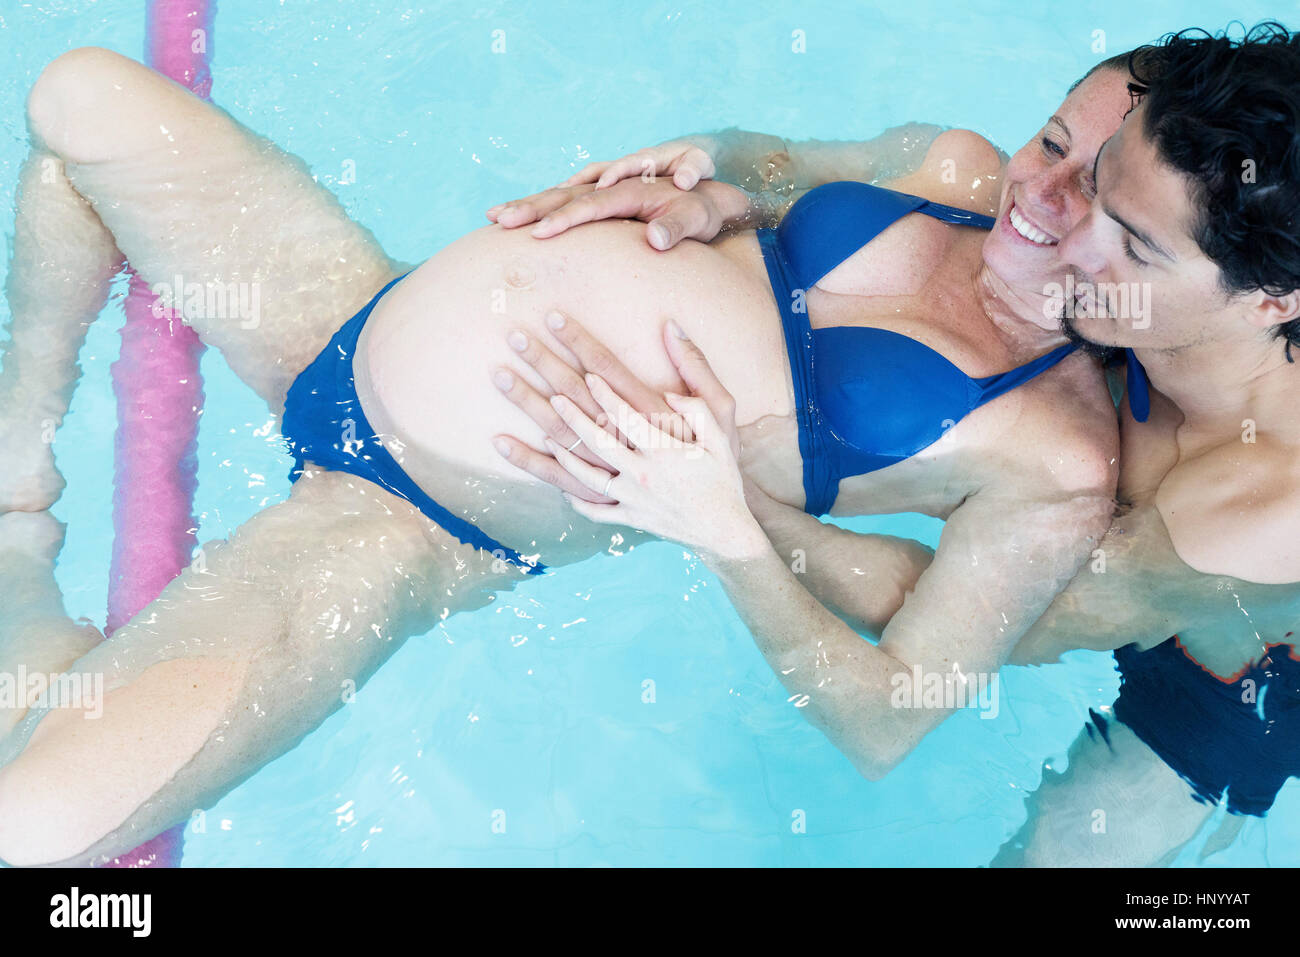 Pregnant woman exercising in swimming pool with help of partner and flotation devices Stock Photo